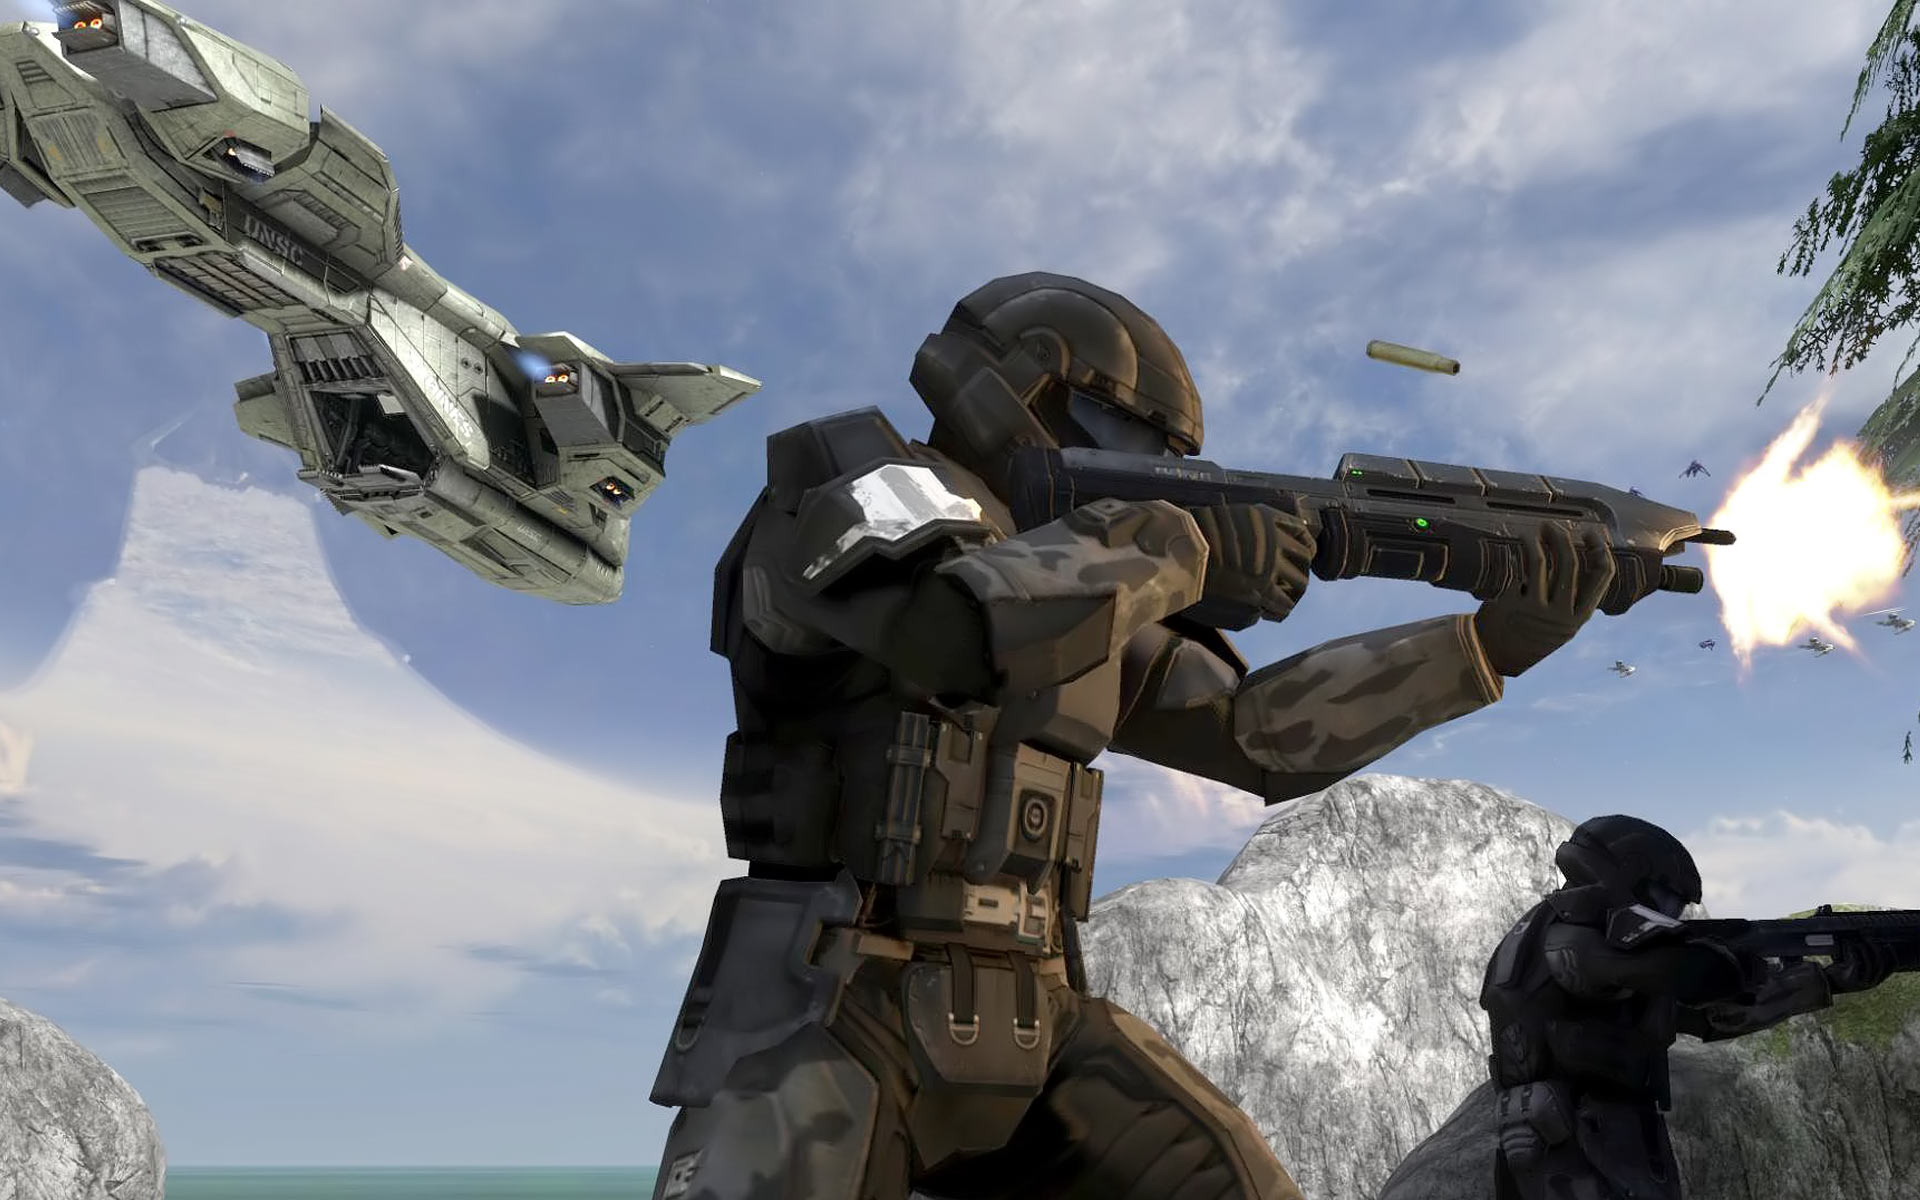 Halo 3 Game HD Wallpapers 1080p Wallpapers   FROBLOG 1920x1200